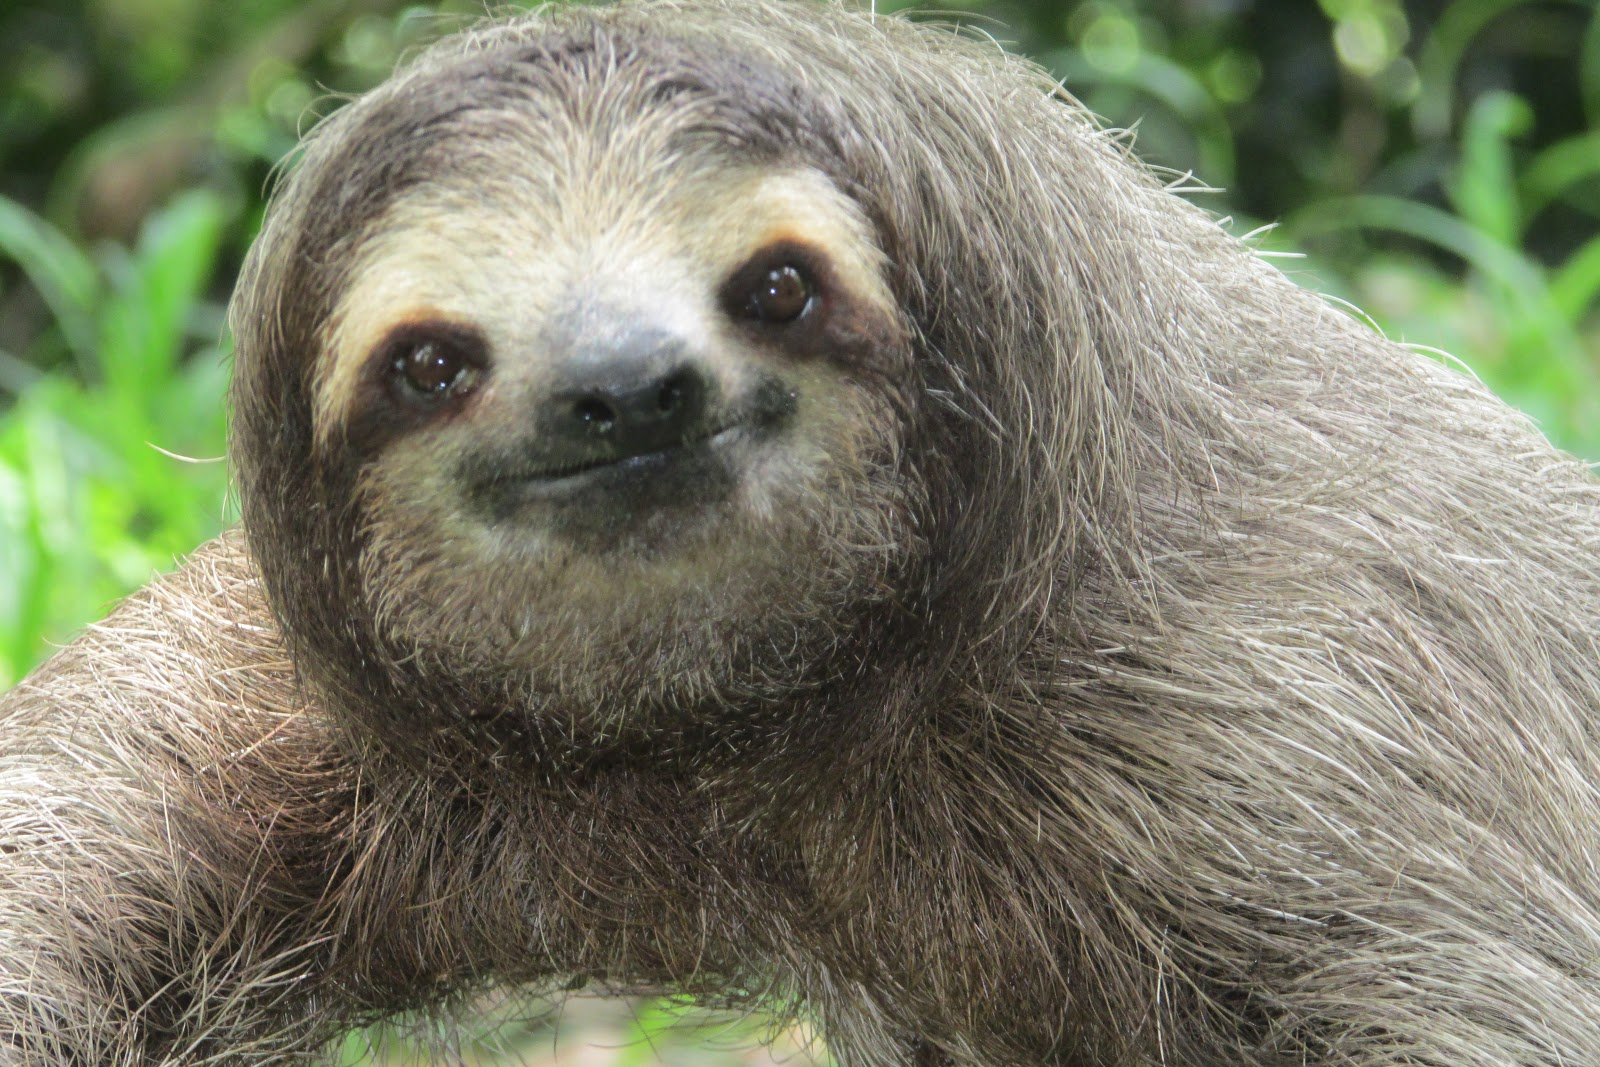 Sloths have funny faces man ign boards - Funny sloth pics ...